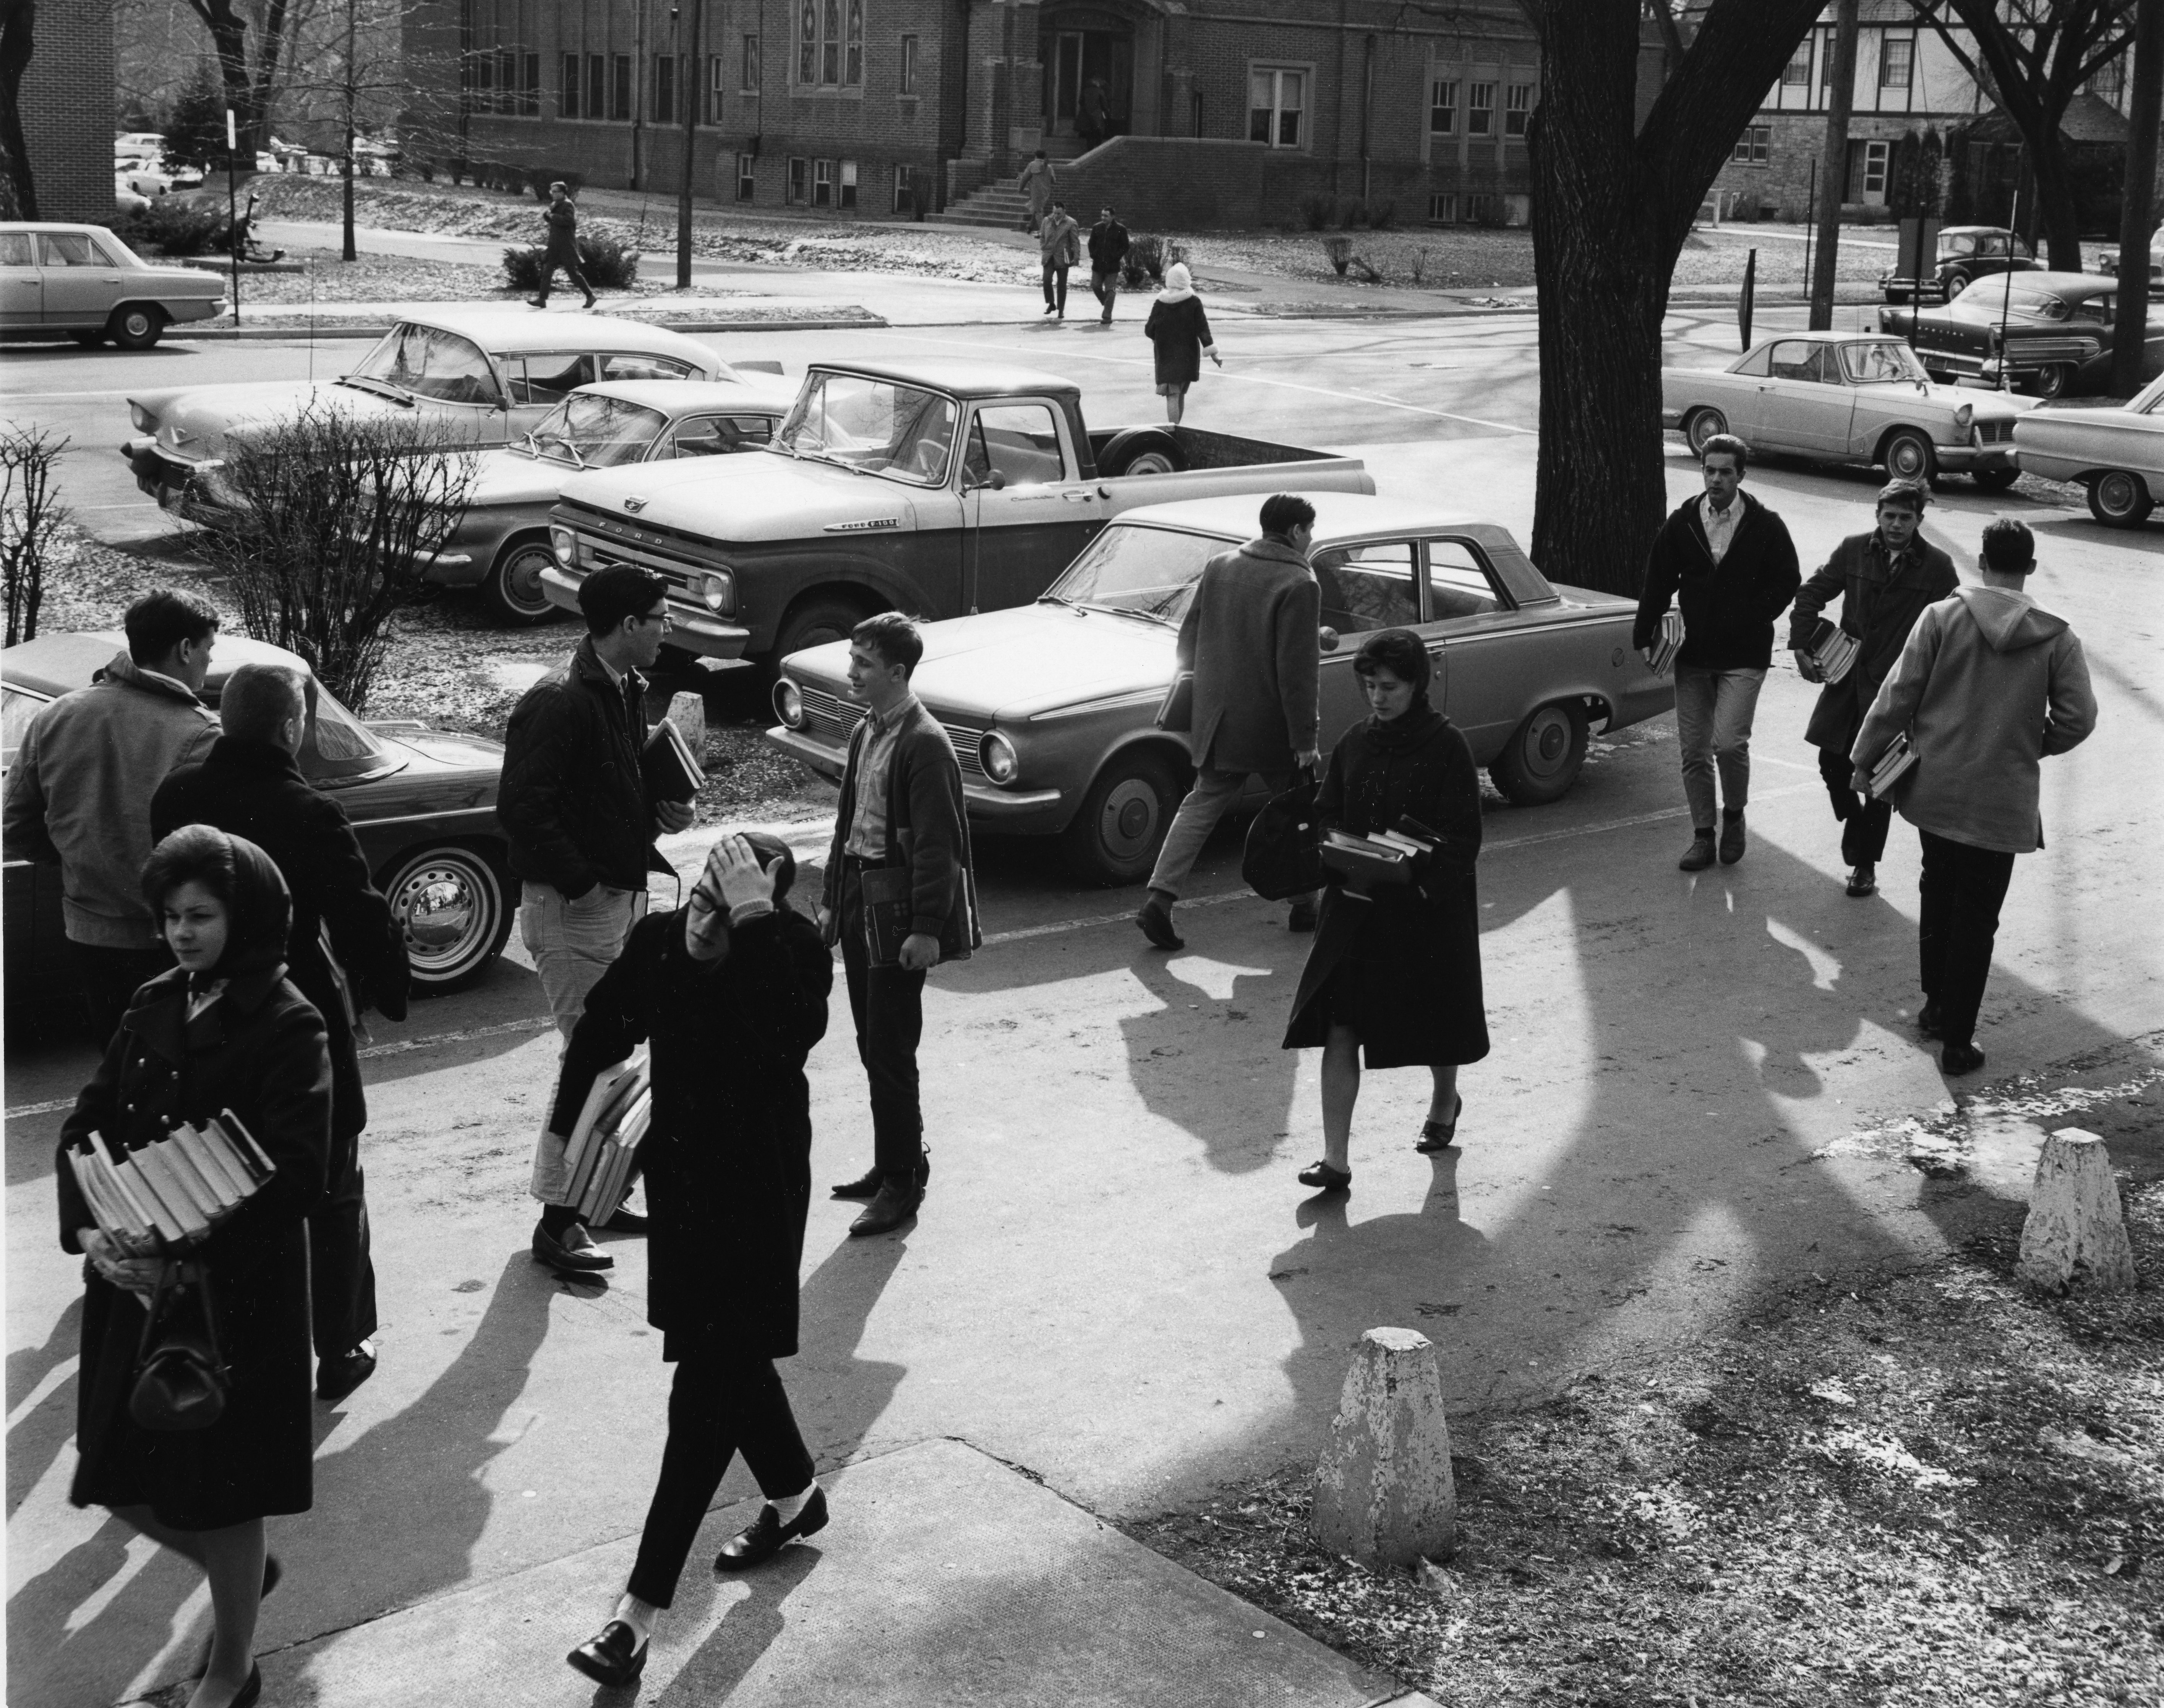 students with books walking to class outside